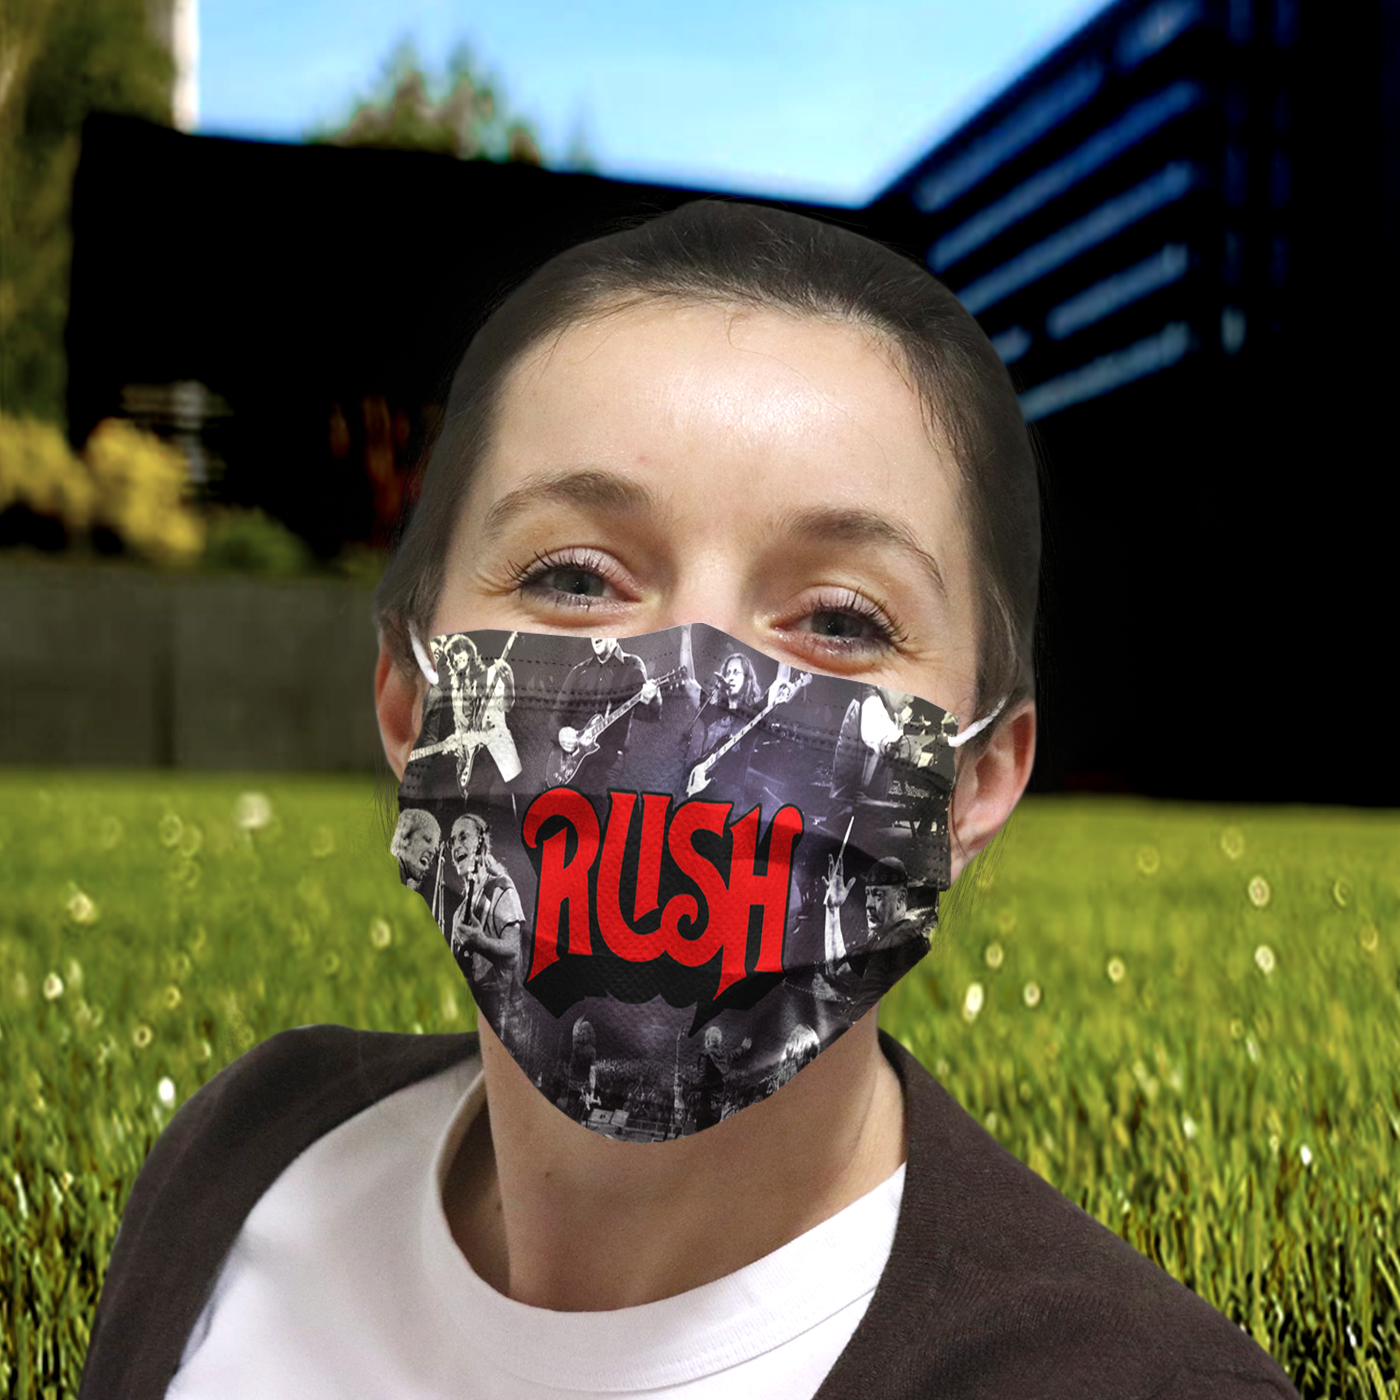 Rush rock band anti-dust cotton face mask 2